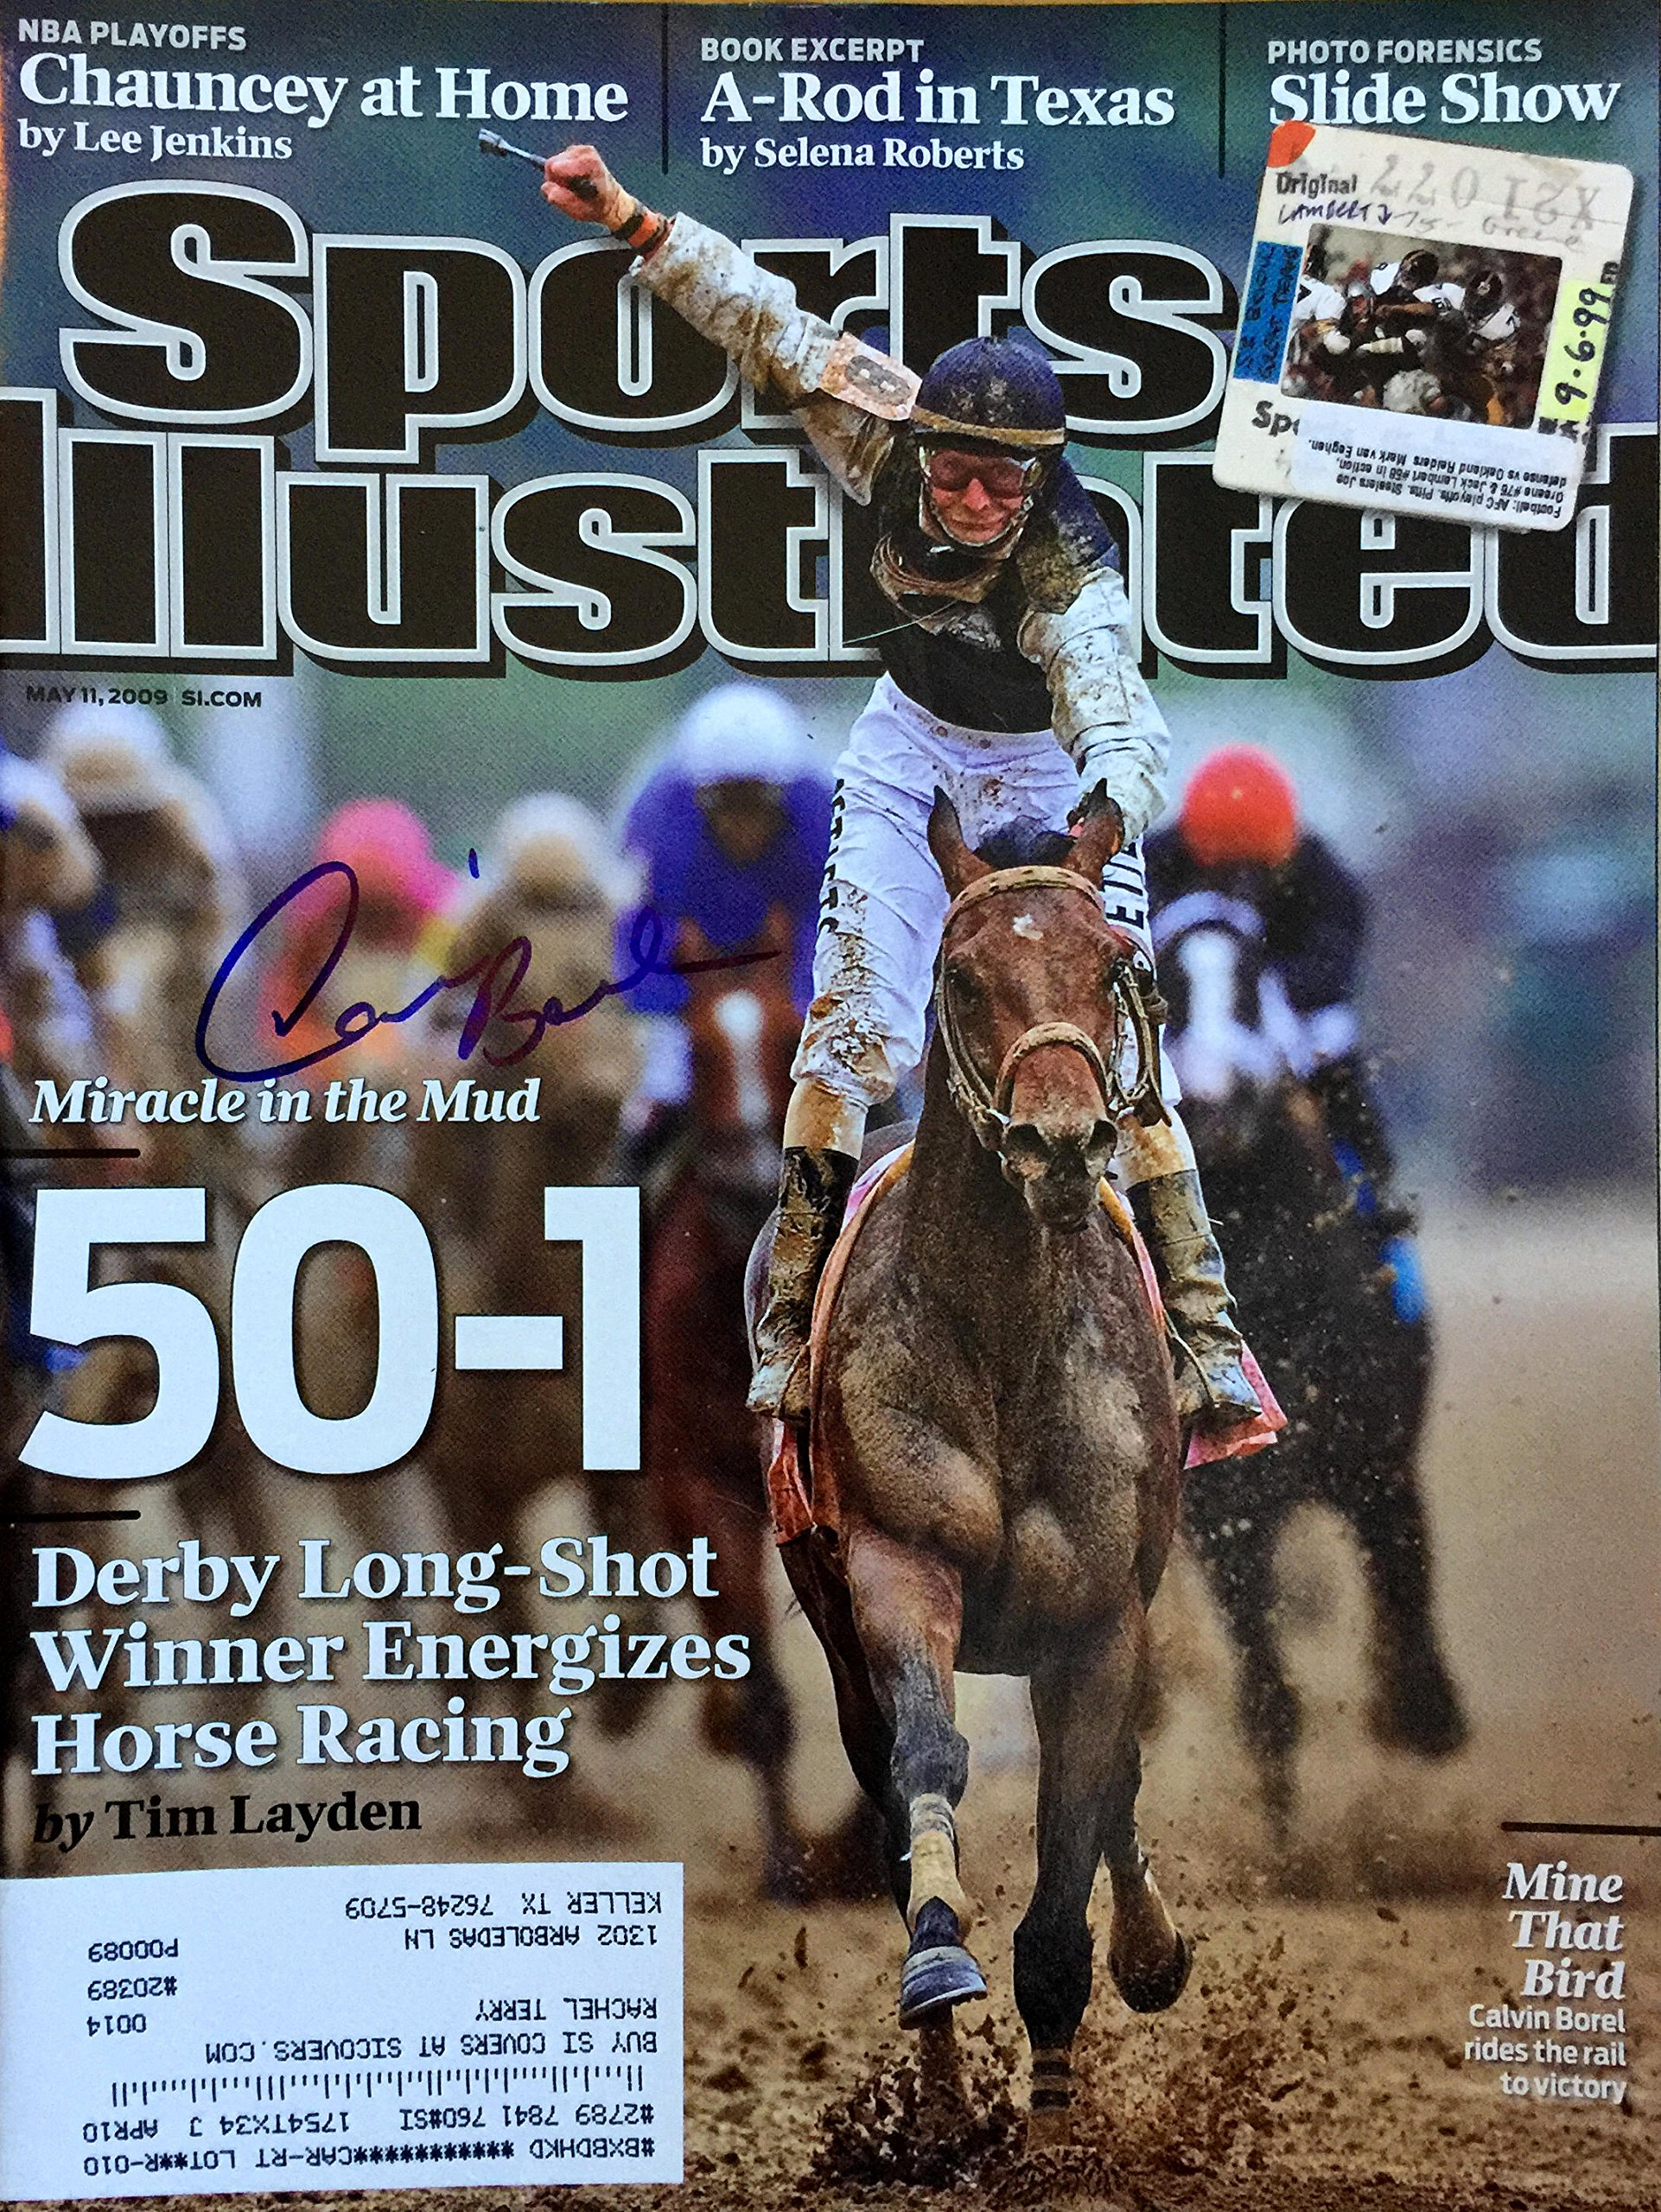 Calvin Borel KENTUCKY DERBY jockey autographed Sports Illustrated magazine 5/11/09